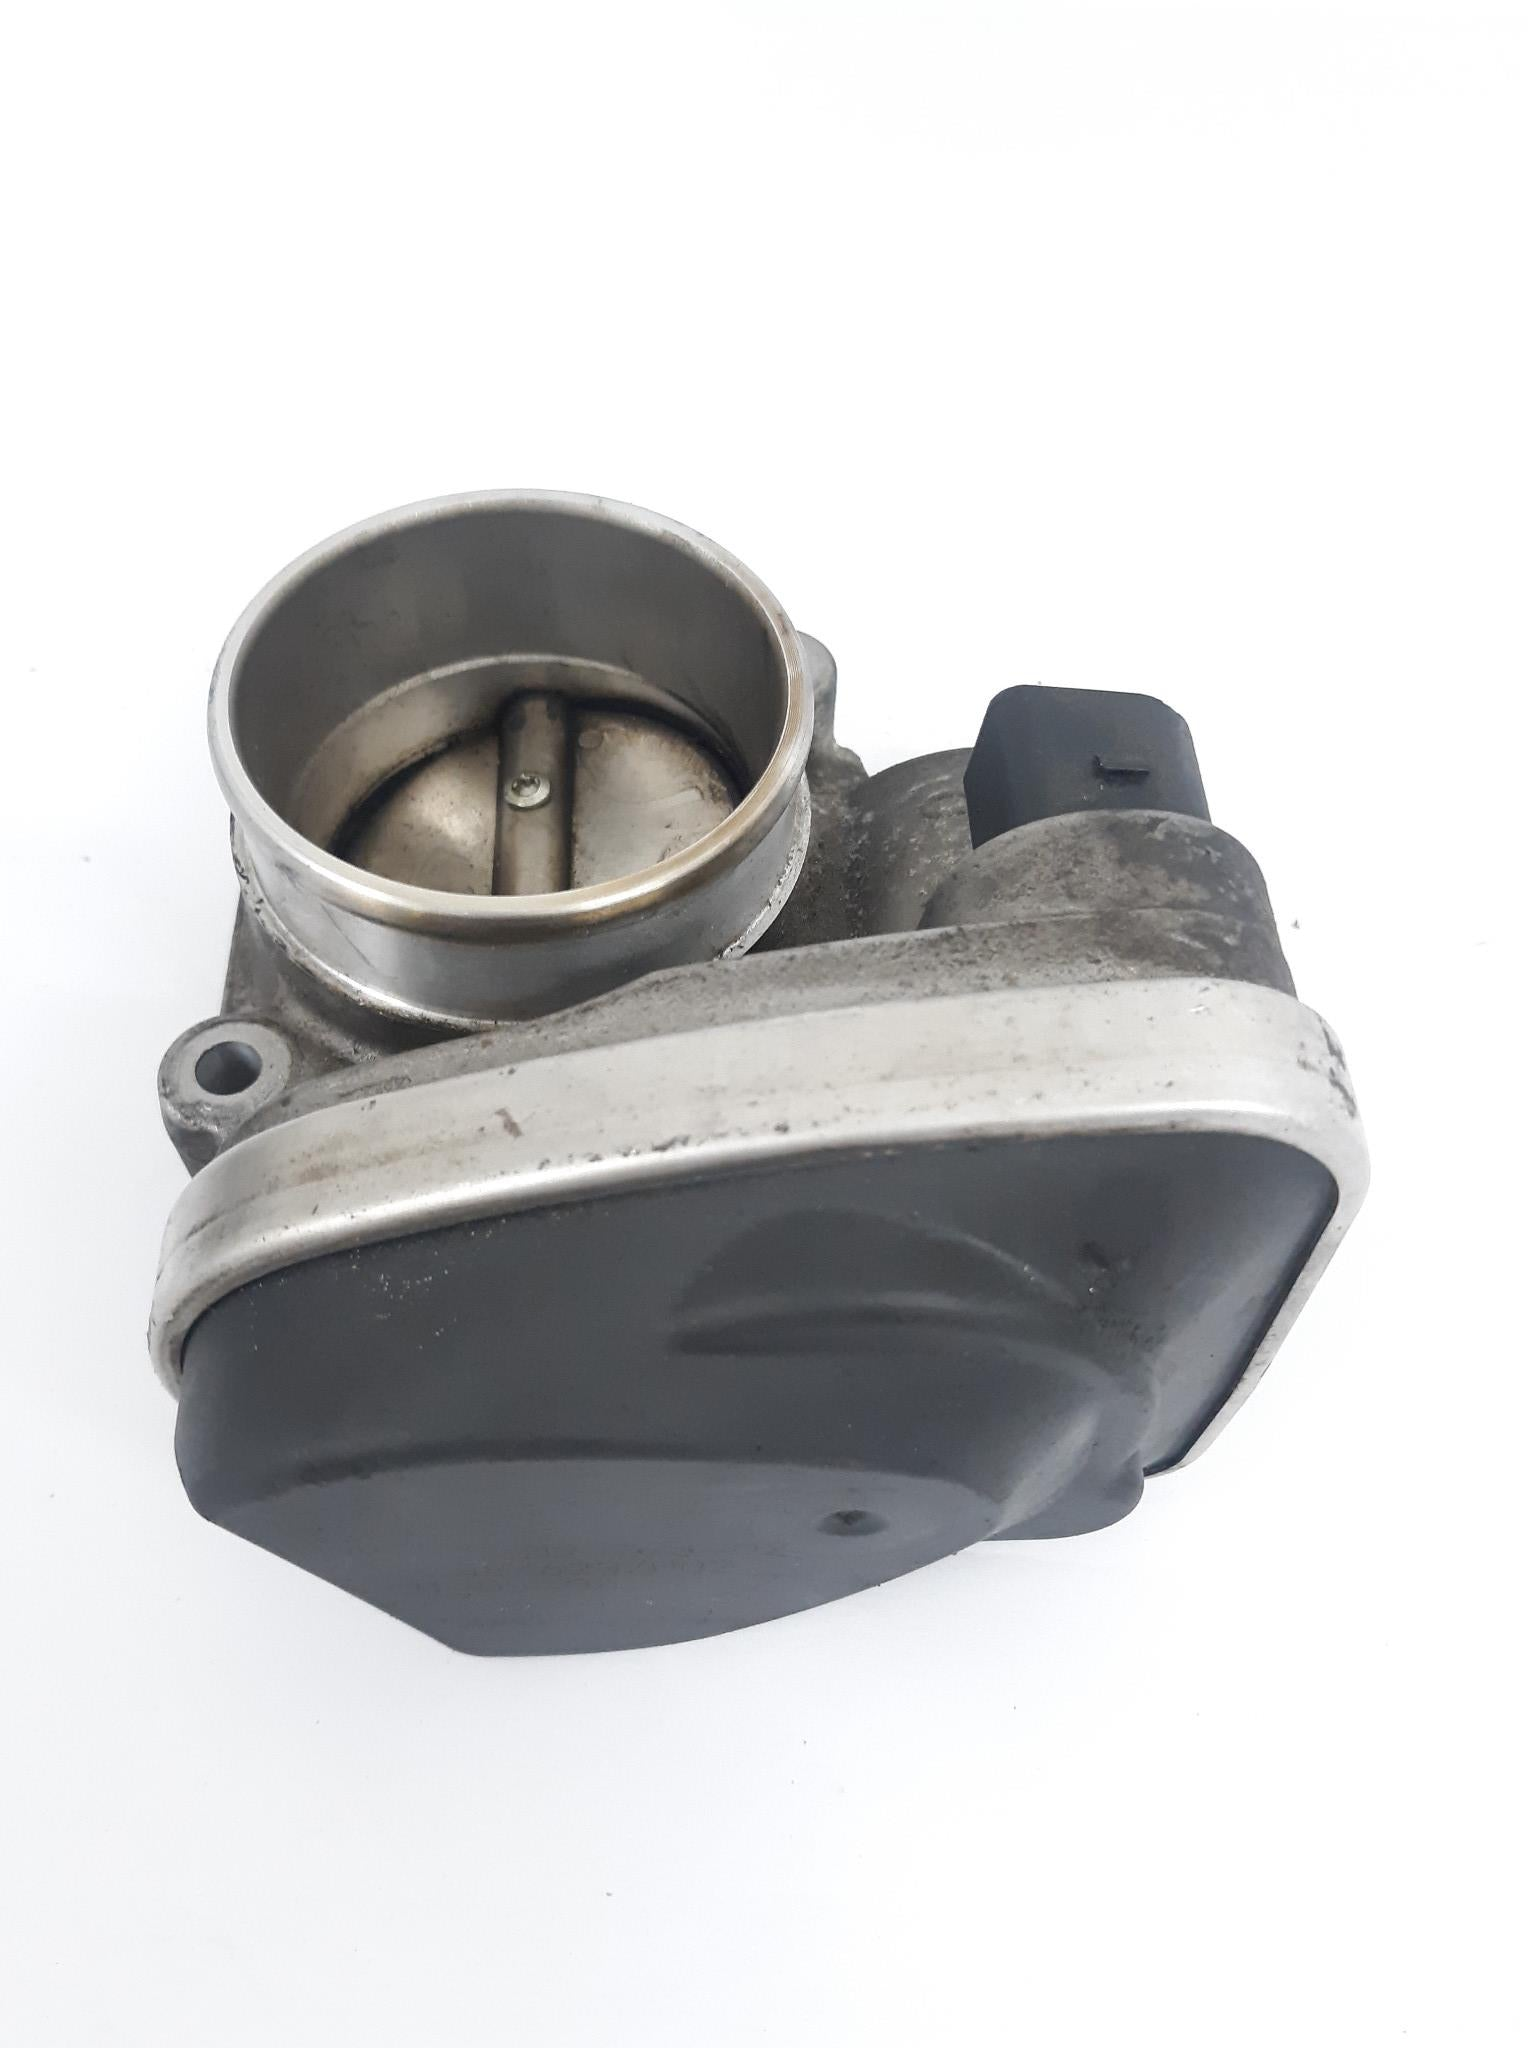 2002 - 2008 MINI COOPER R50 R52 ENGINE AIR INTAKE THROTTLE BODY 7509043 OEM - Click Receive Auto Parts